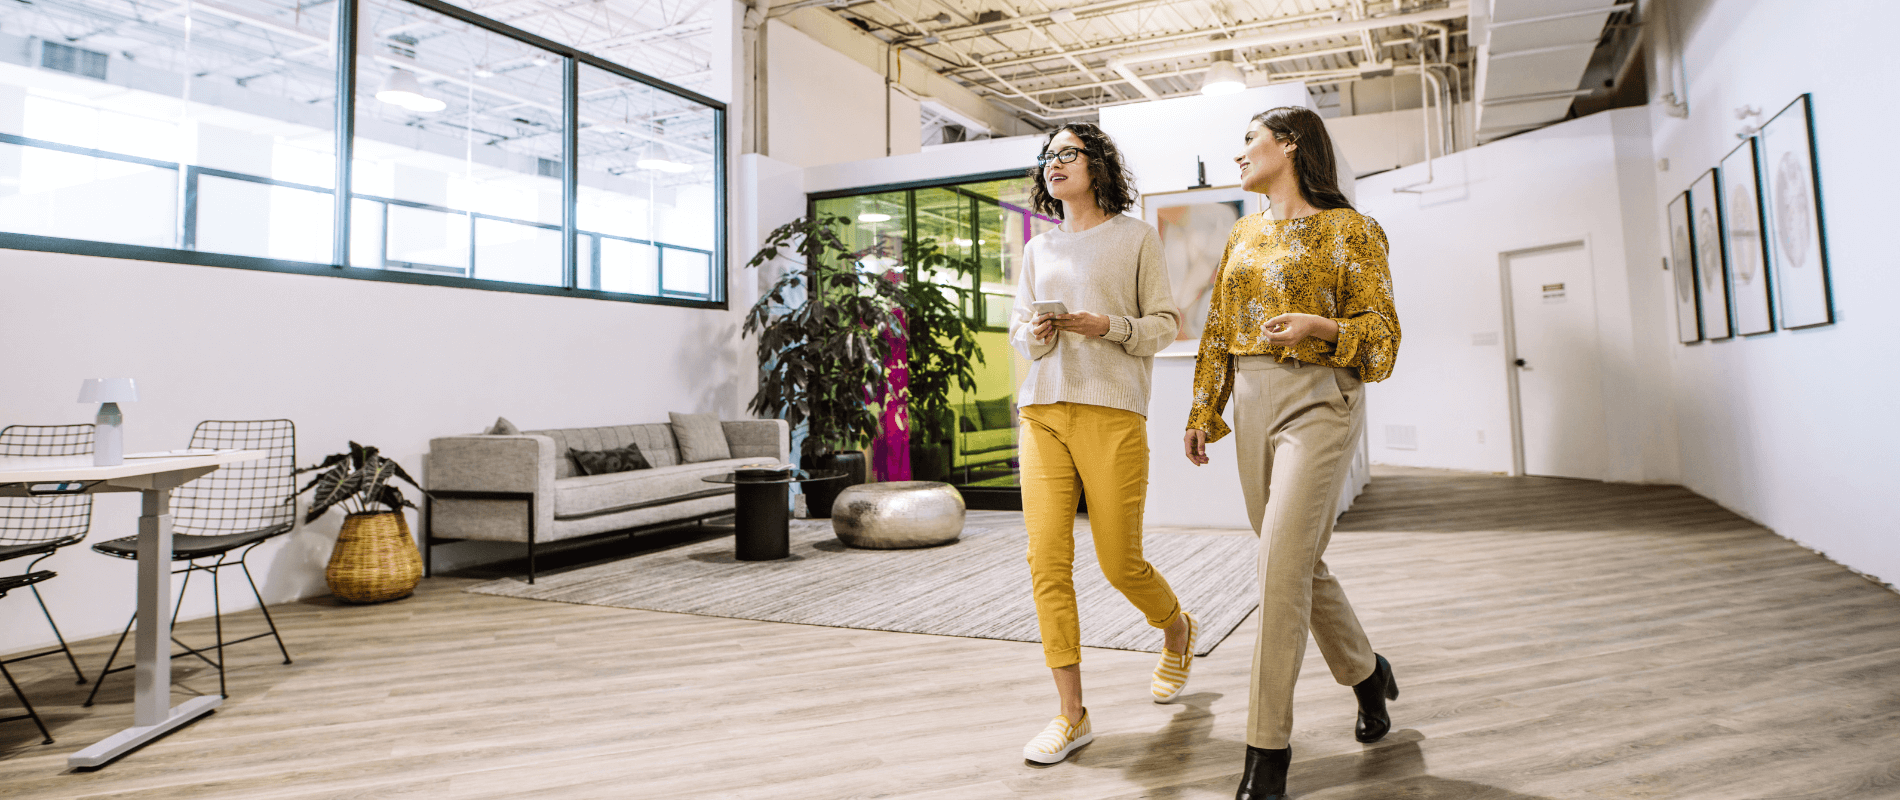 3 major ways the workplace experience is changing in 2021 and beyond